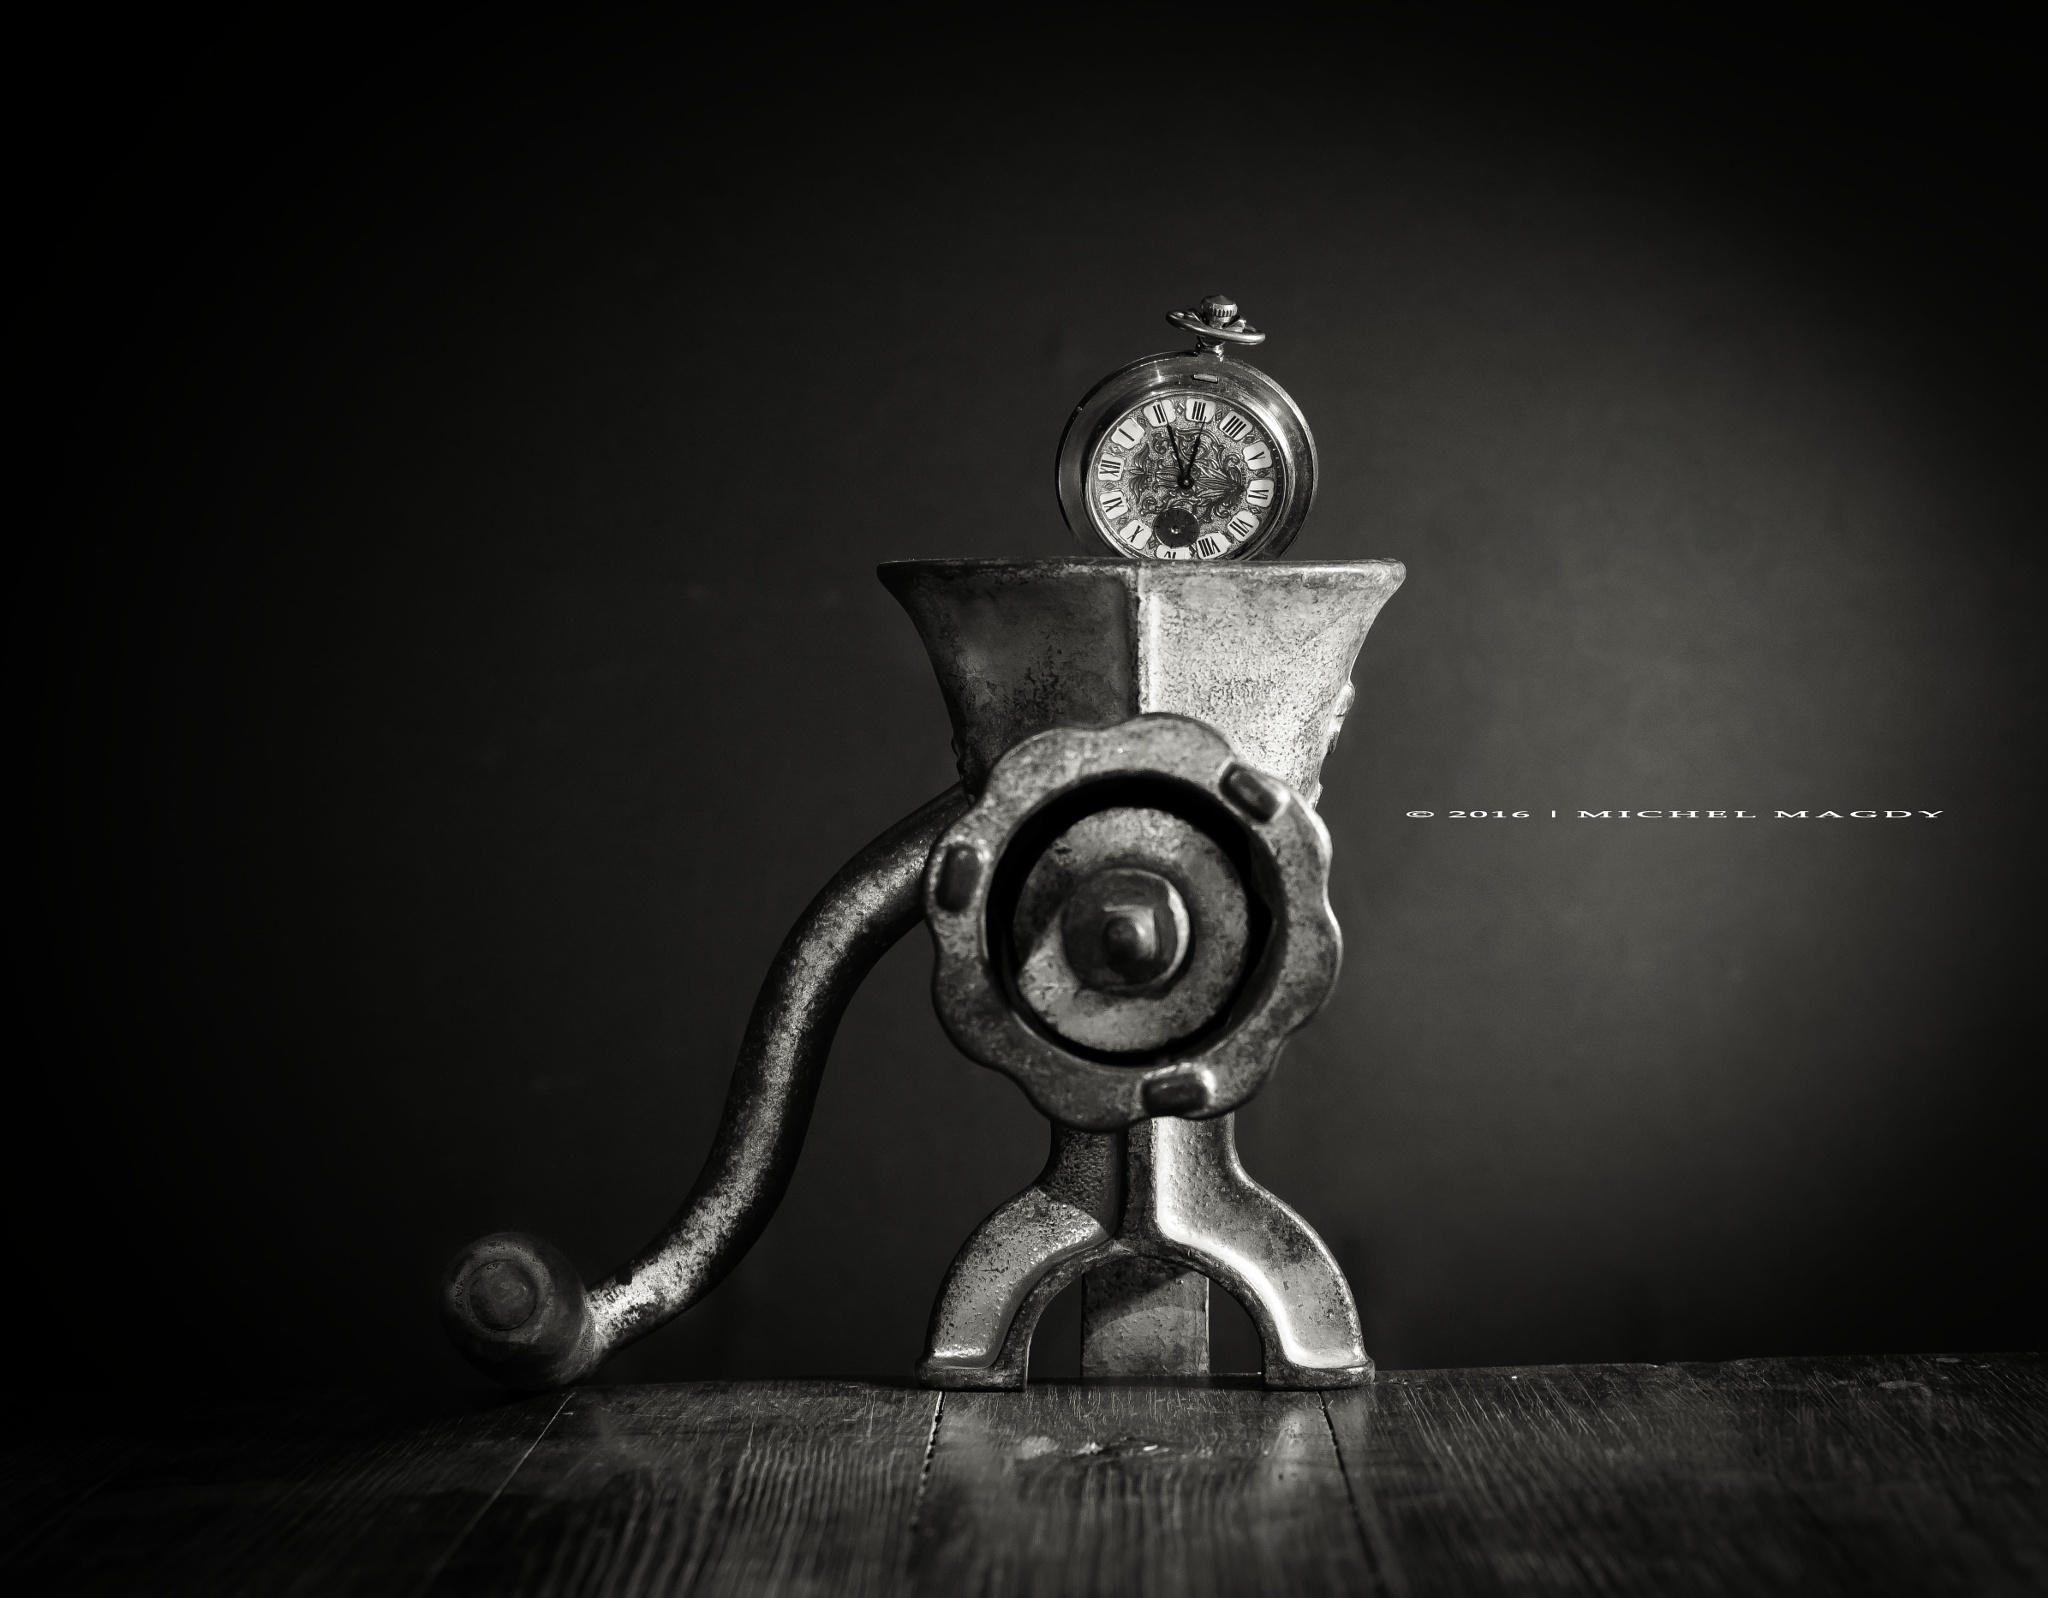 Time goes fast by Michel Magdy